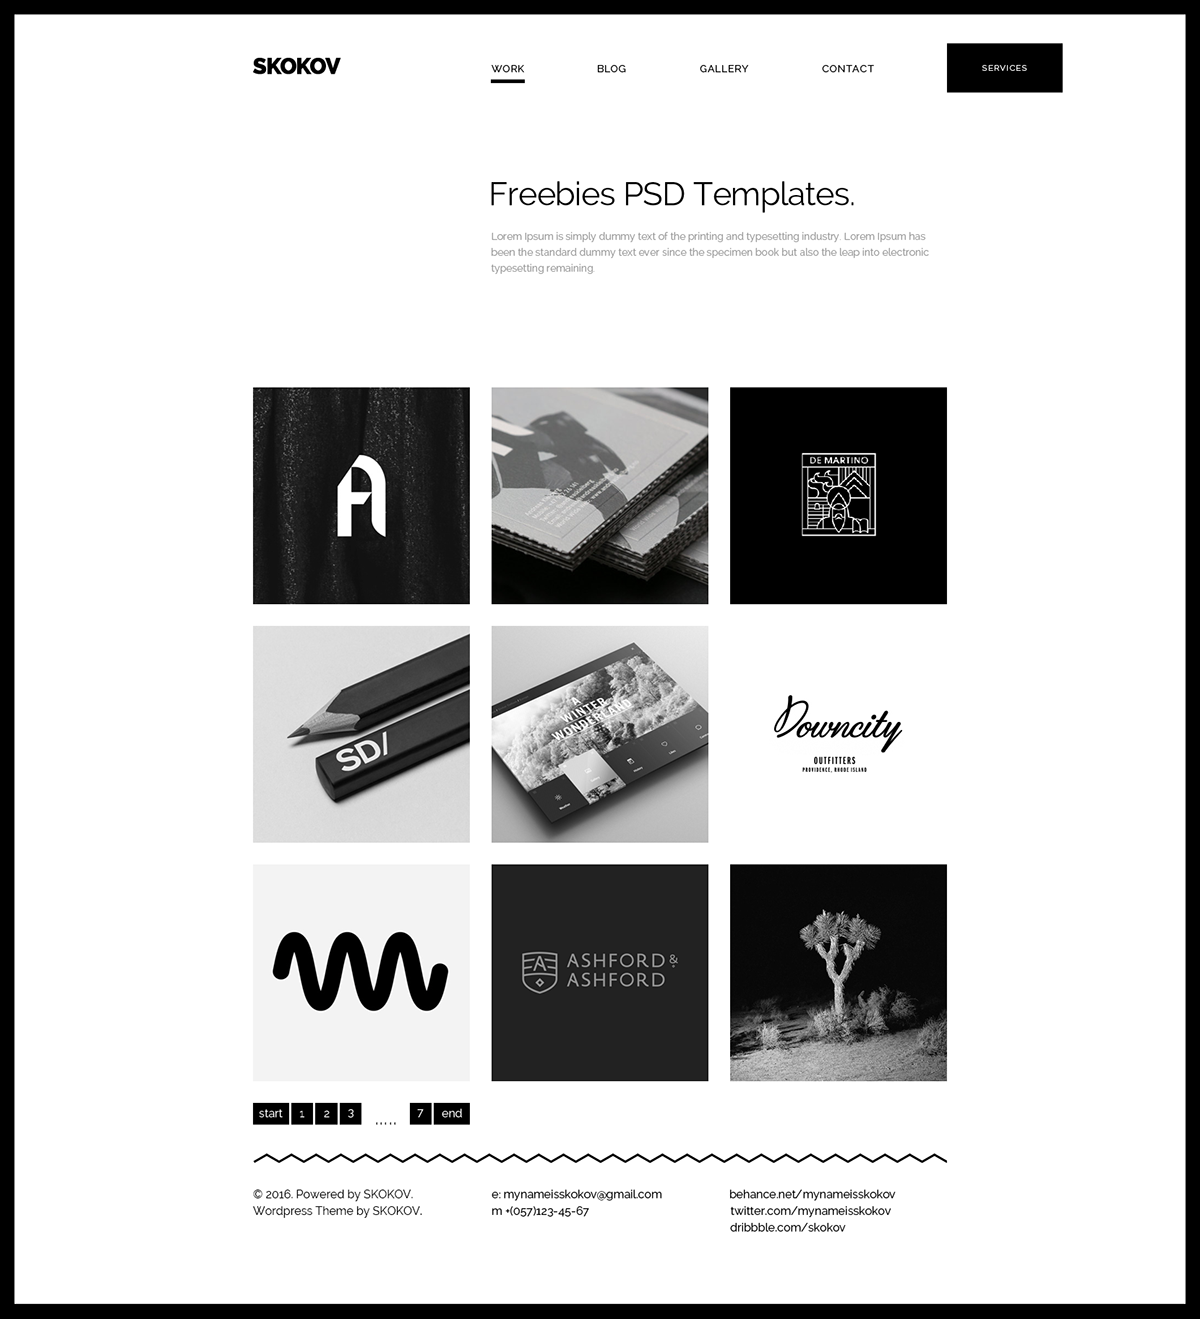 SKOKOV Portfolio - Free PSD Template on Behance